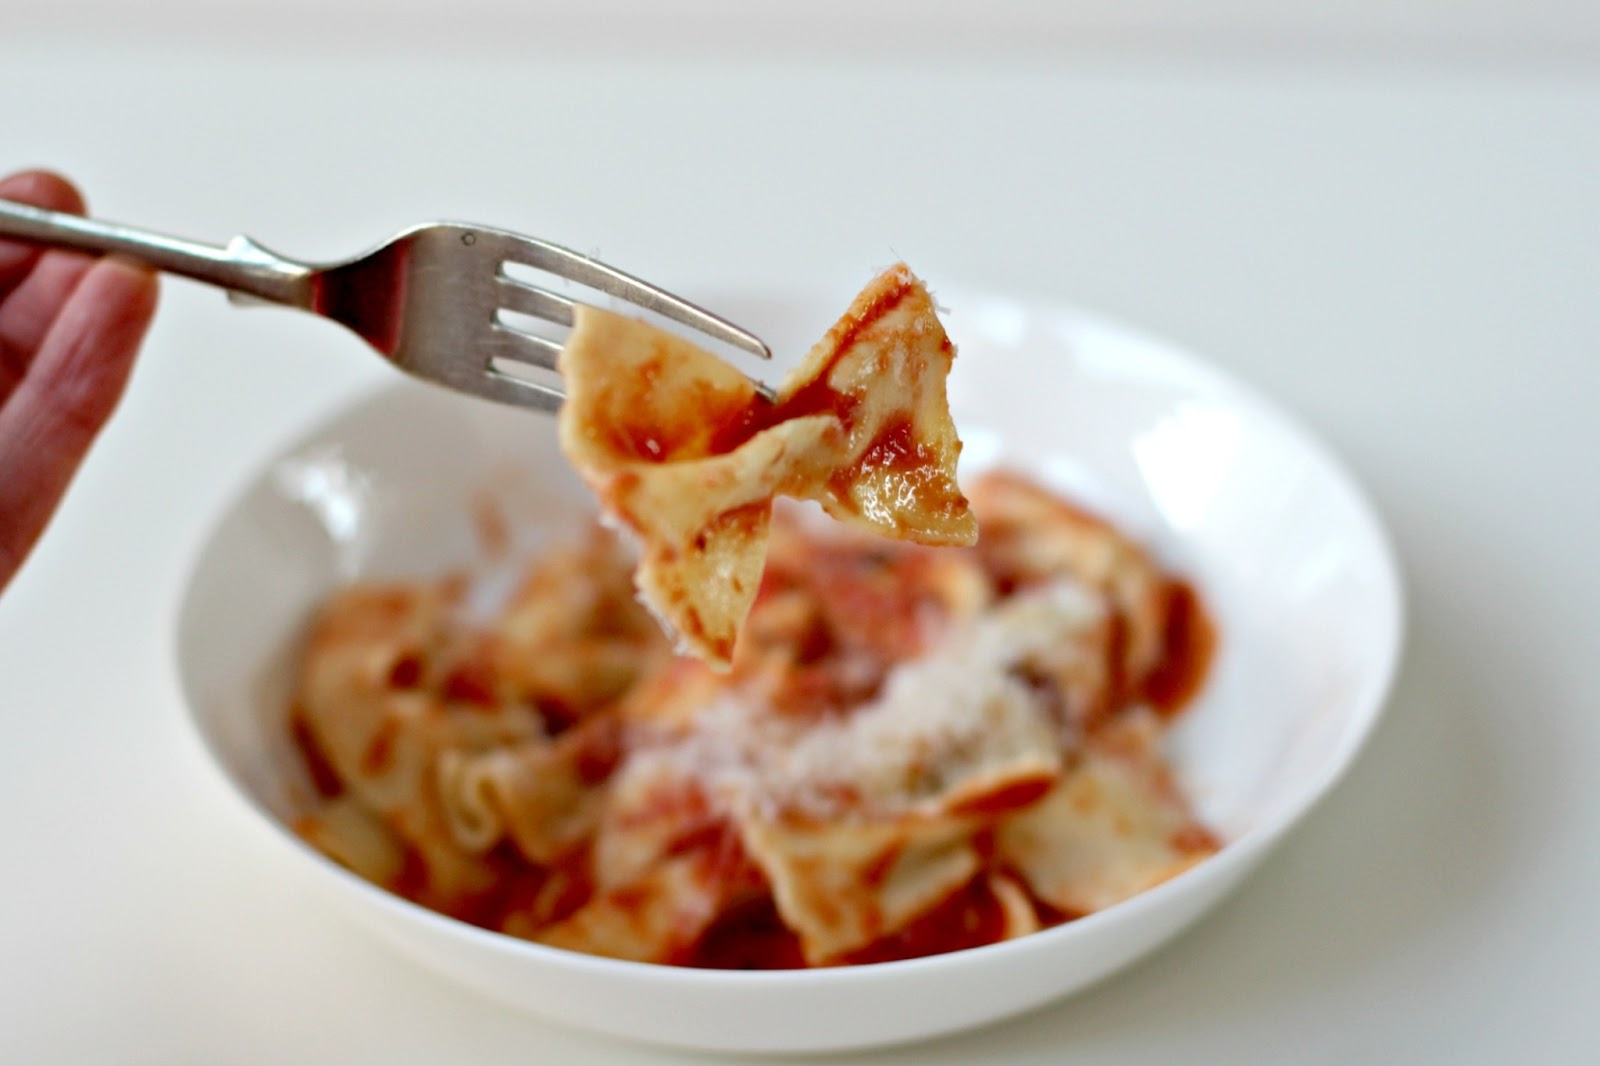 ... and Honey: Home Made Farfalle with Porcini, Mascarpone Tomato Sauce